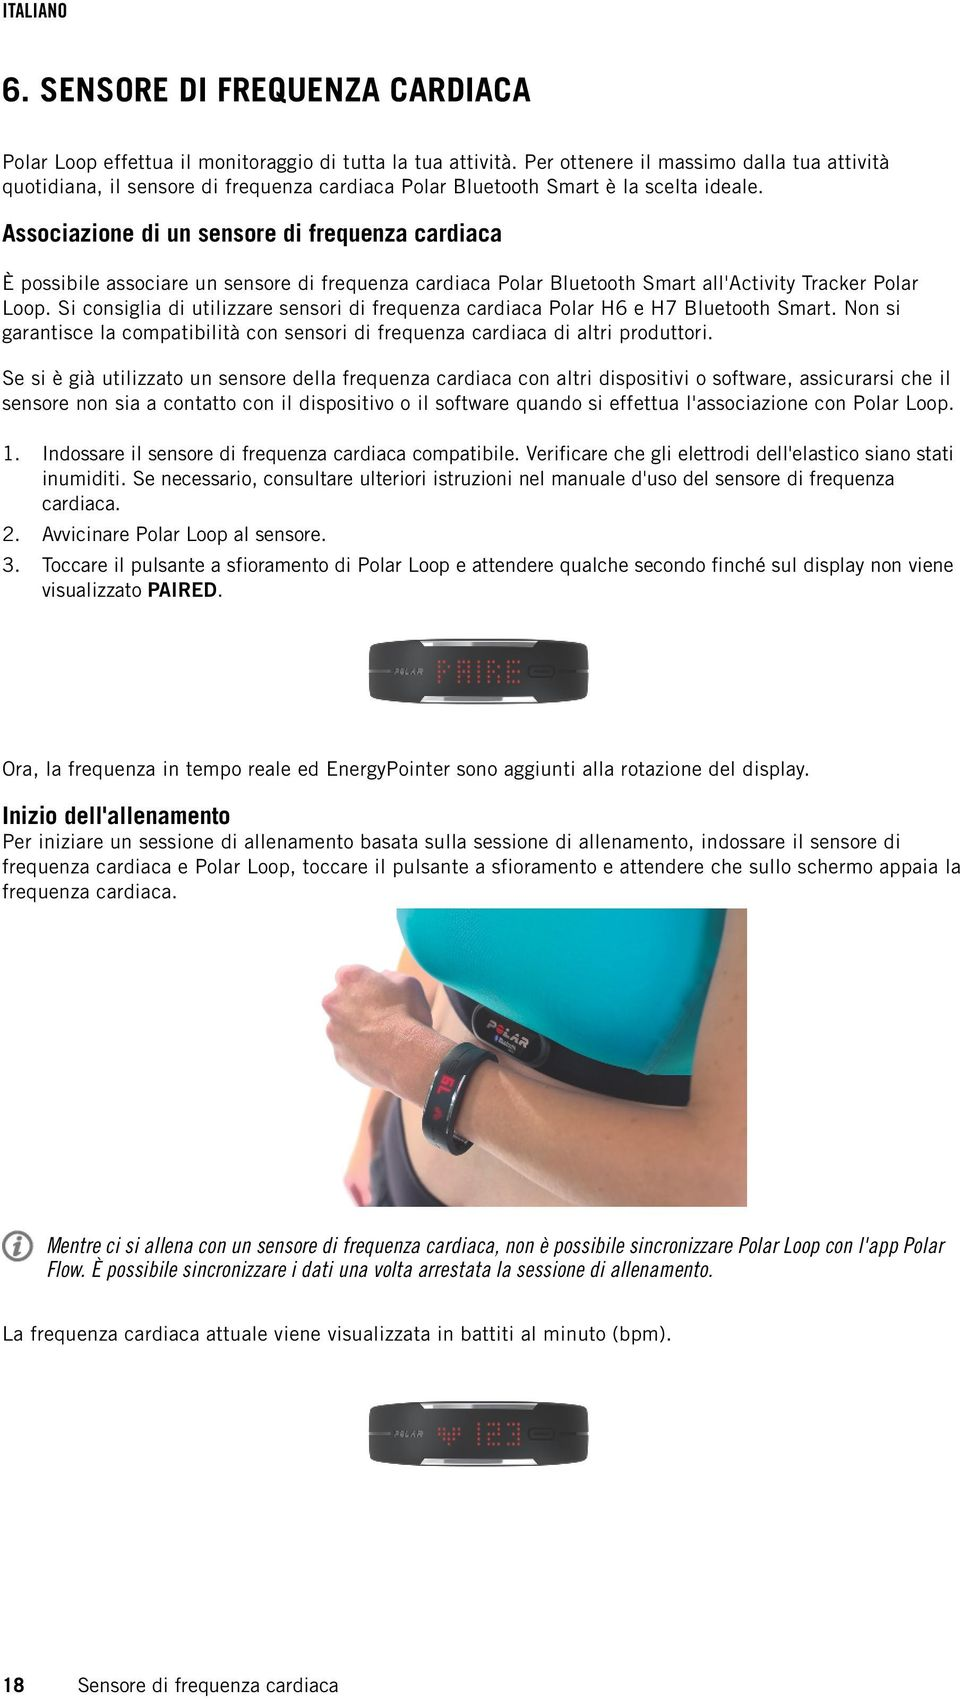 Associazione di un sensore di frequenza cardiaca È possibile associare un sensore di frequenza cardiaca Polar Bluetooth Smart all'activity Tracker Polar Loop.